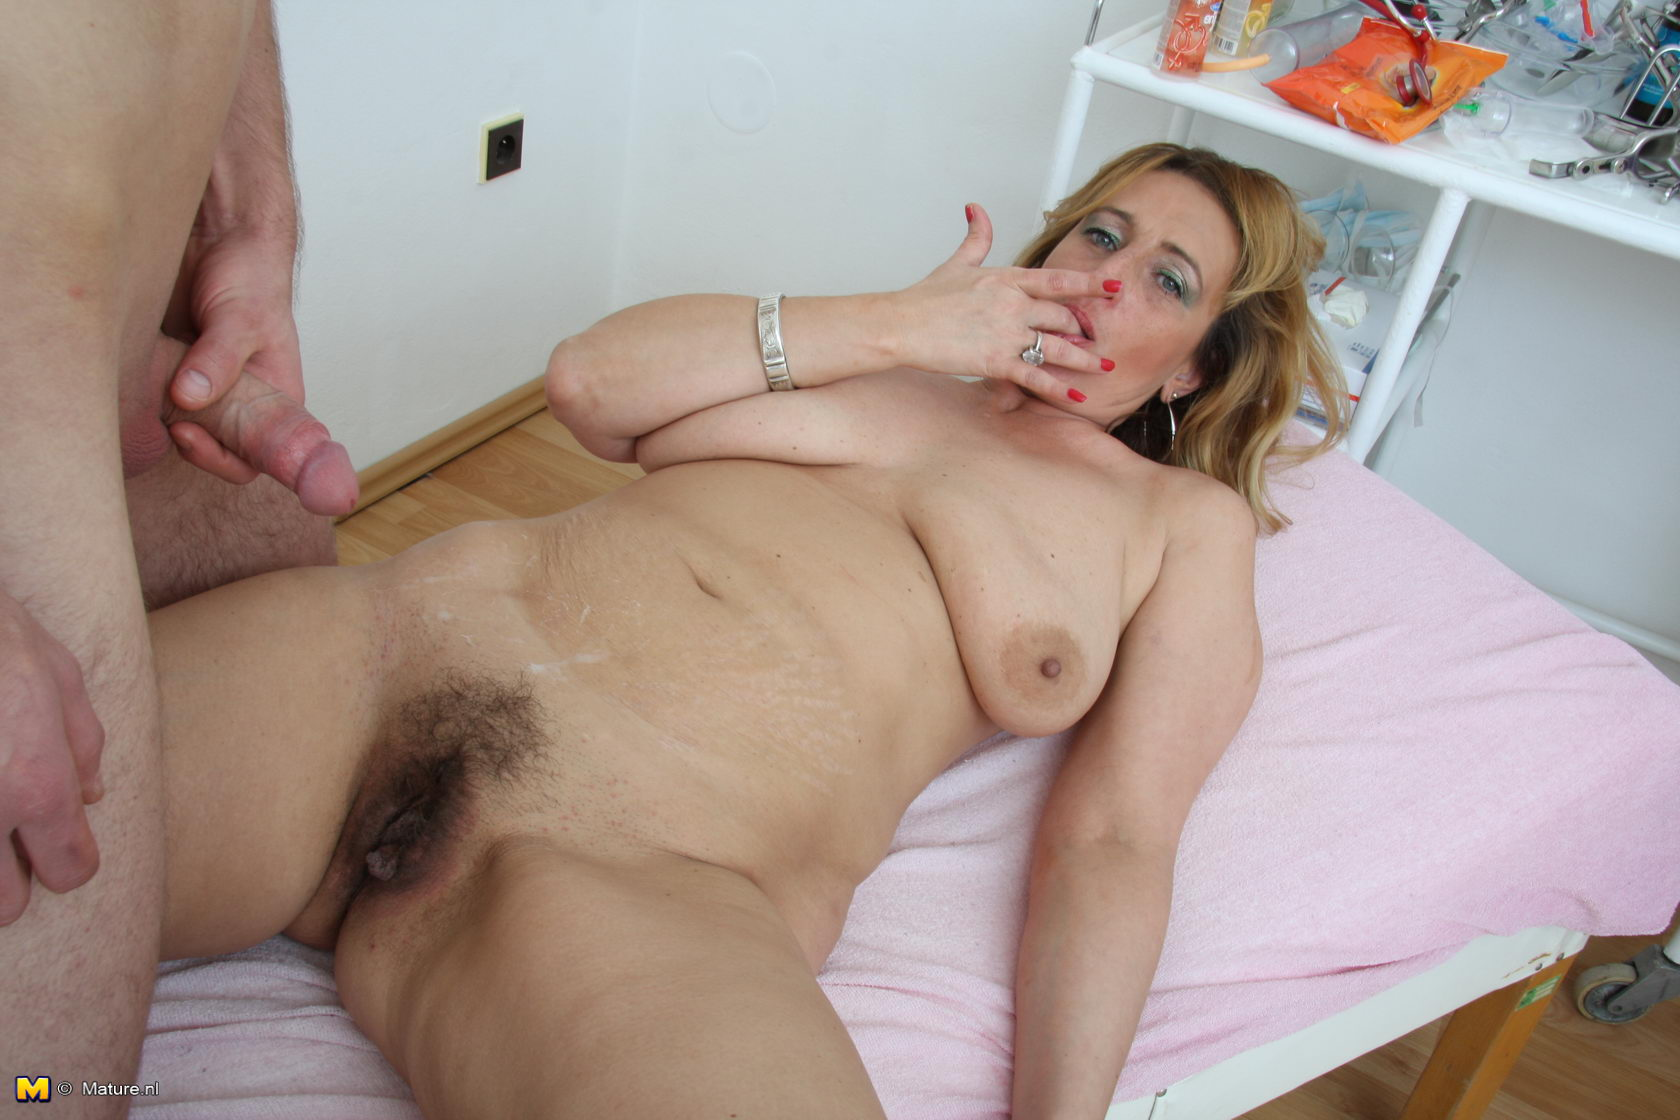 Mature mommy tube